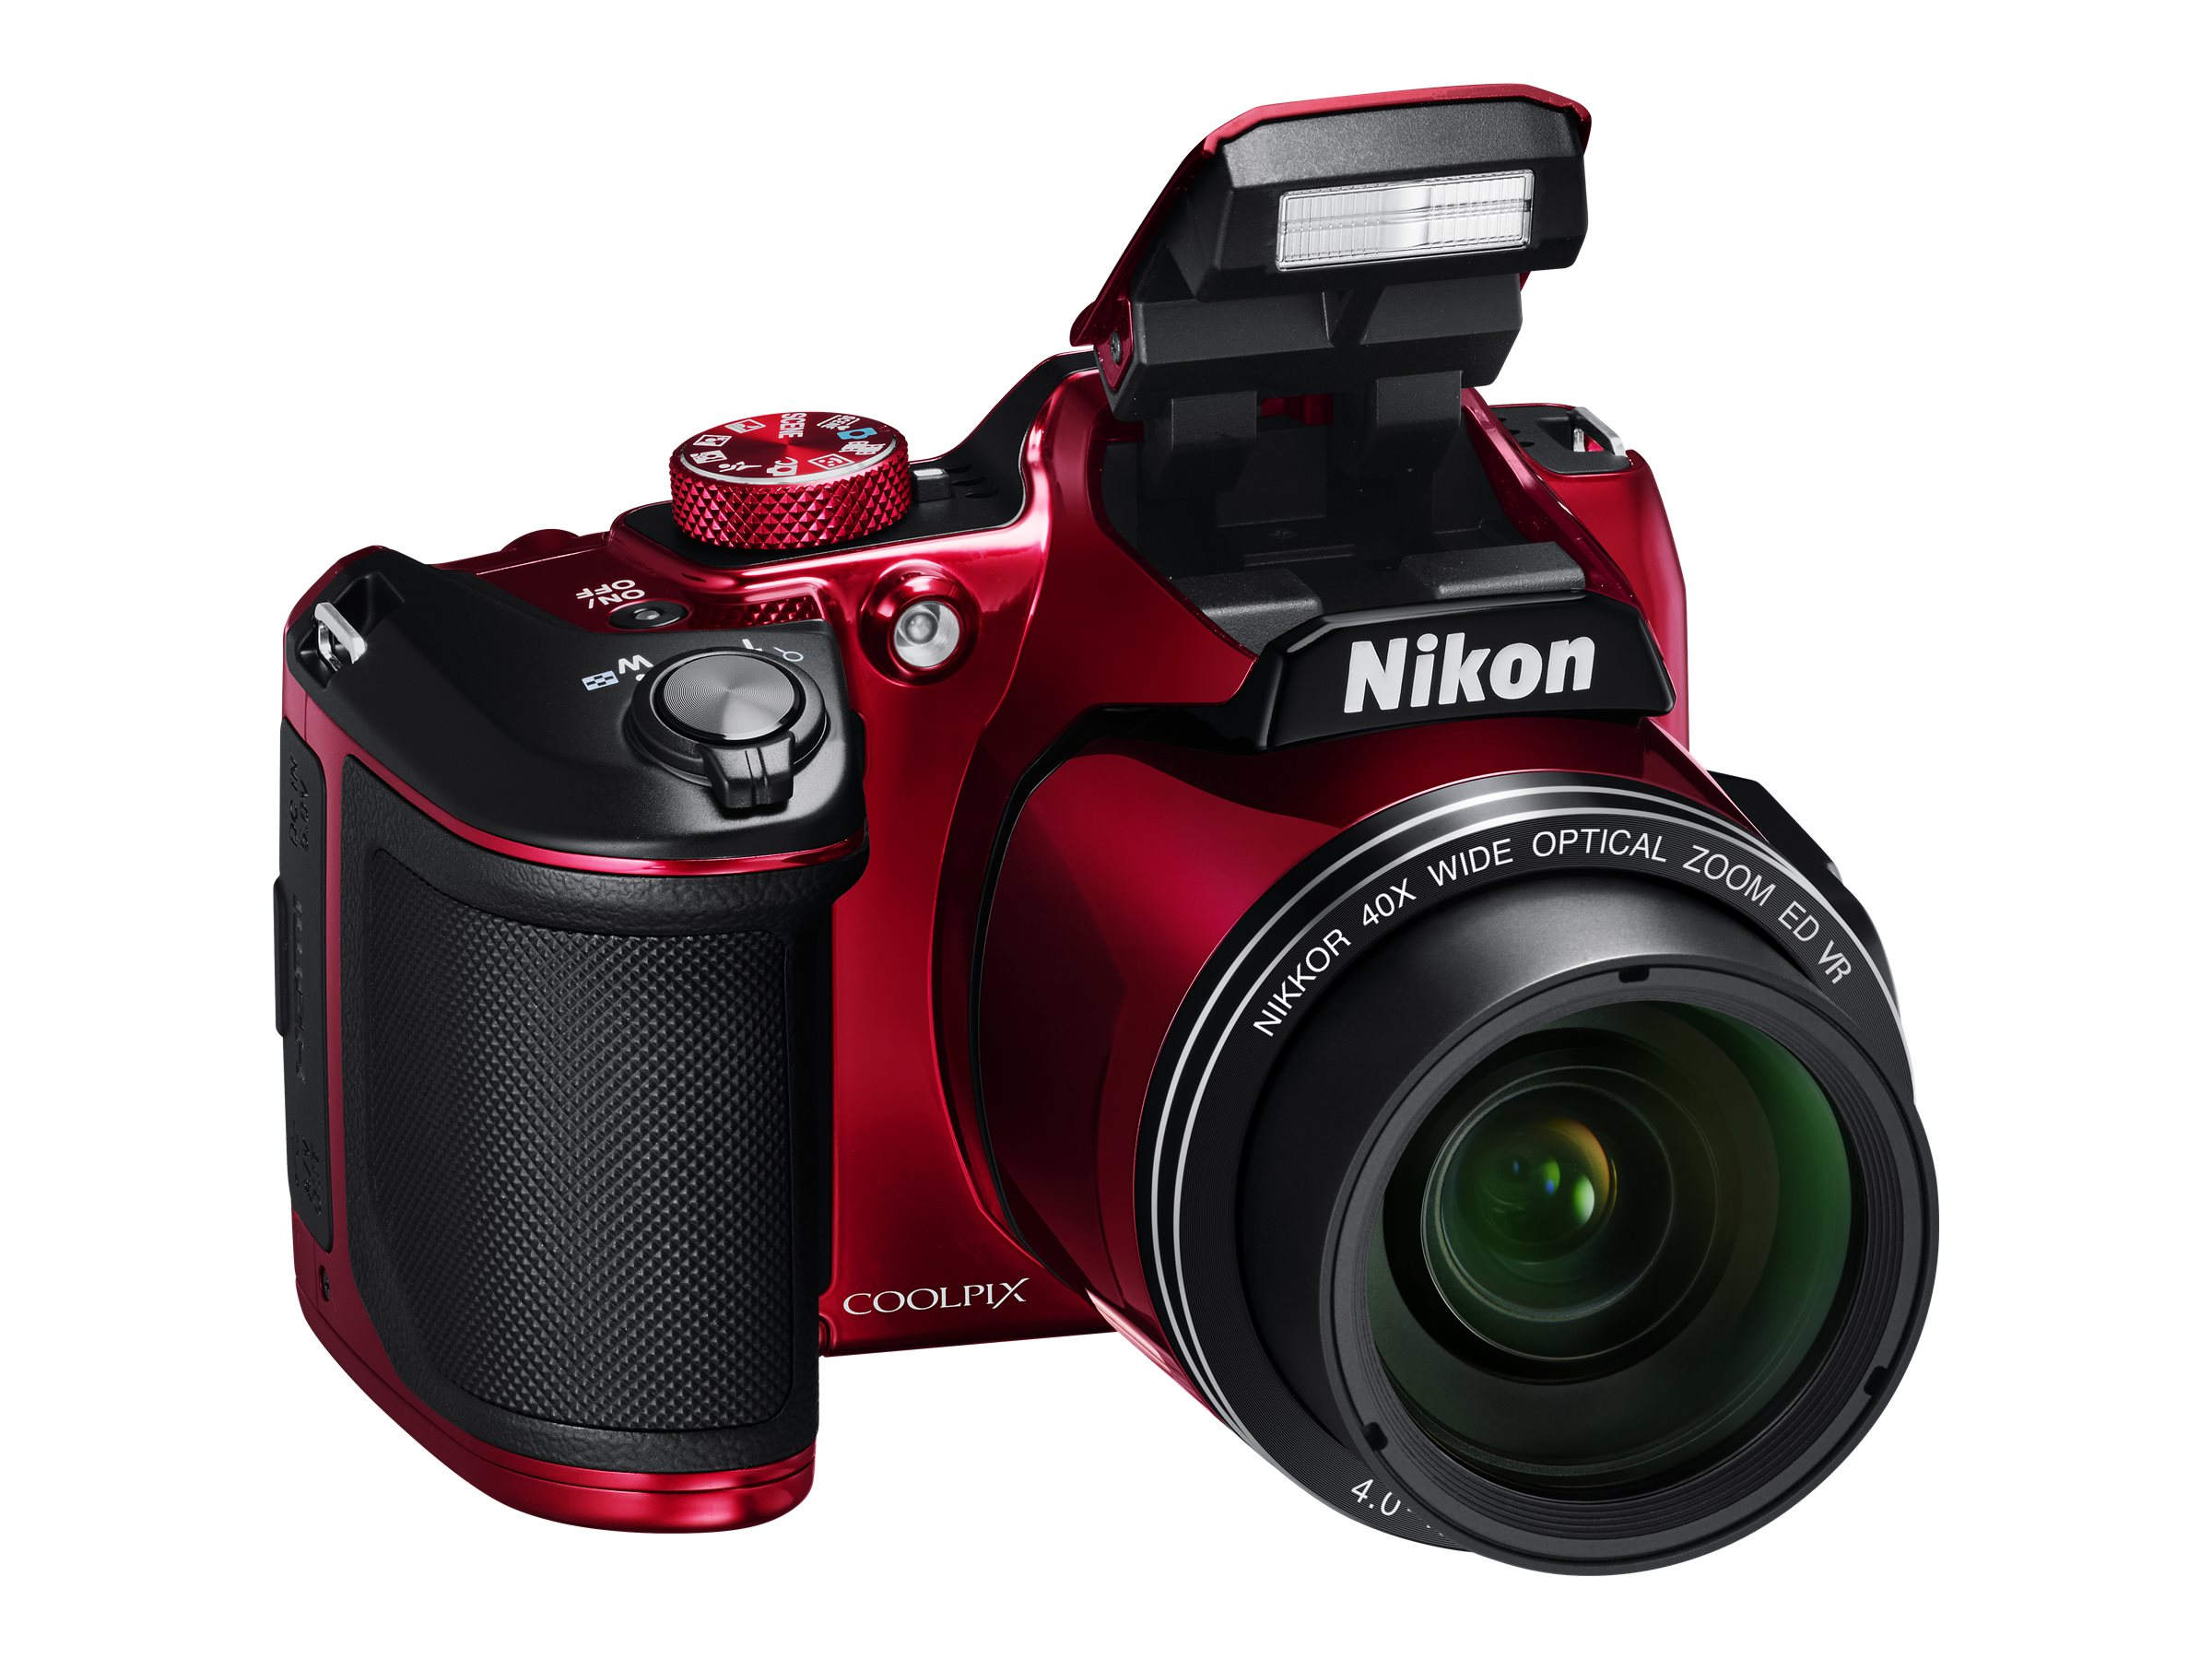 Nikon COOLPIX B500 Digital Camera, Red, 26508